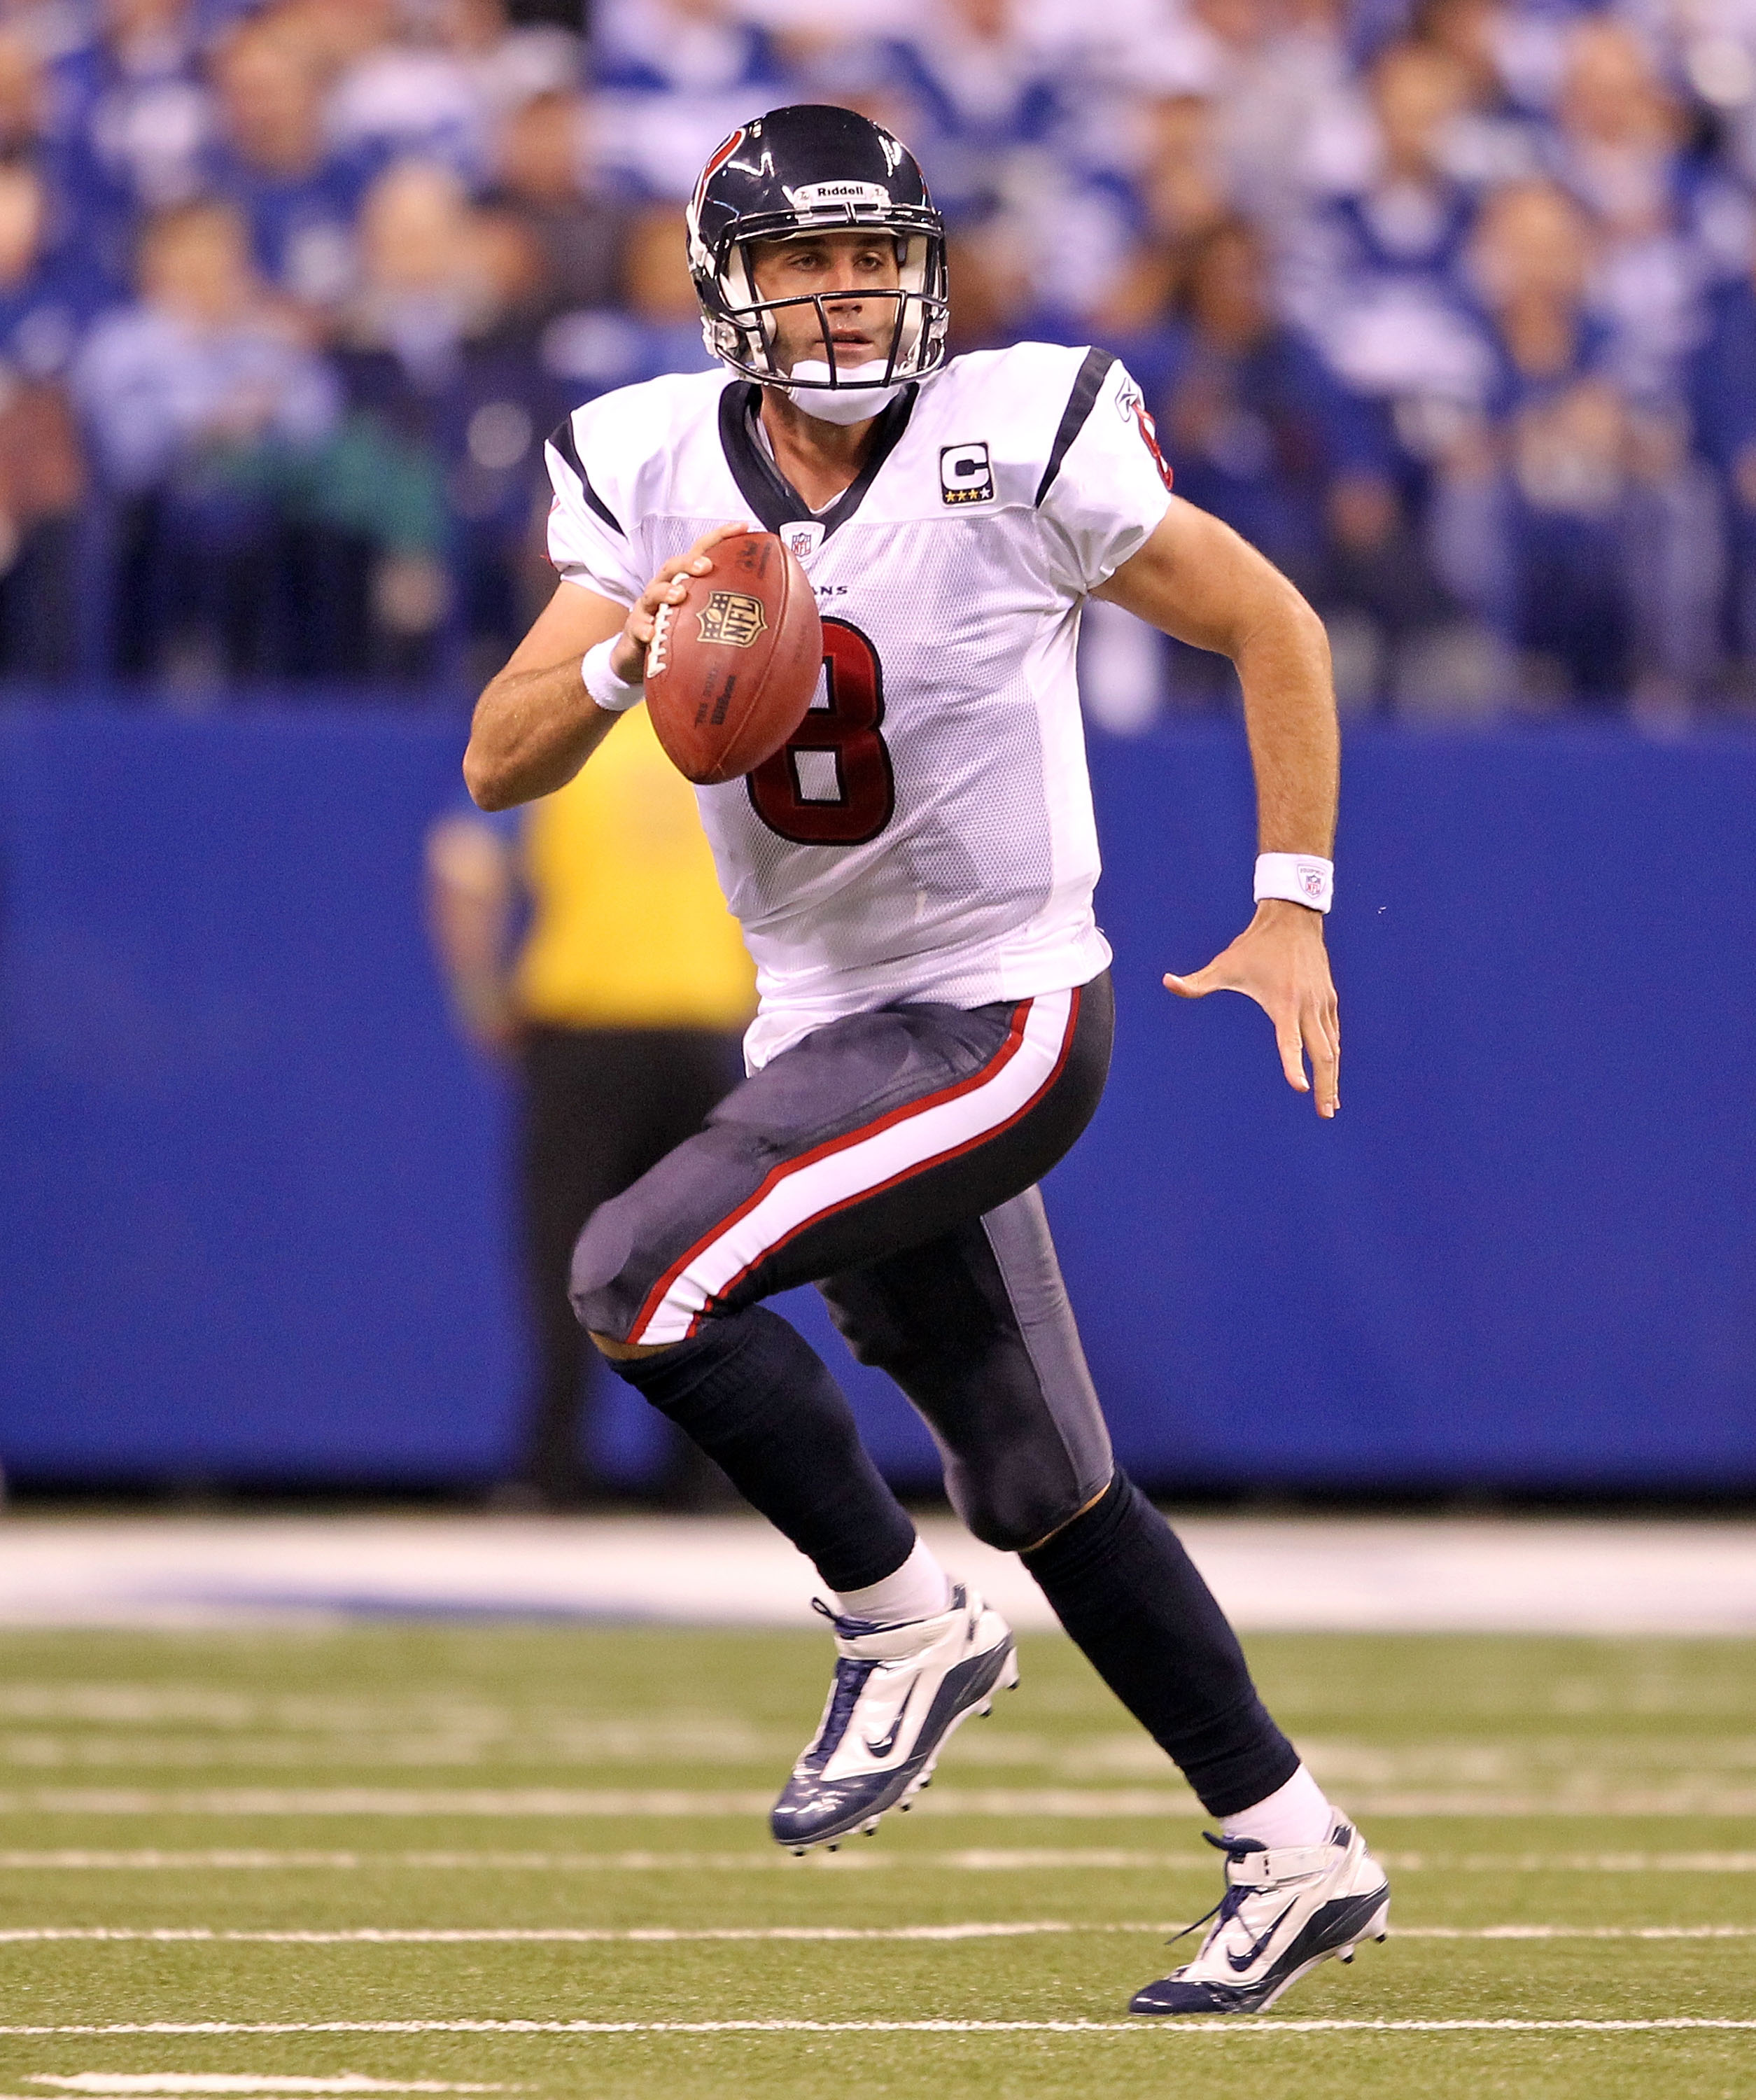 INDIANAPOLIS - NOVEMBER 01:  Matt Schaub #8 of Houston Texans runs with the ball during the NFL game against the Indianapolis Colts at Lucas Oil Stadium on November 1, 2010 in Indianapolis, Indiana.  (Photo by Andy Lyons/Getty Images)